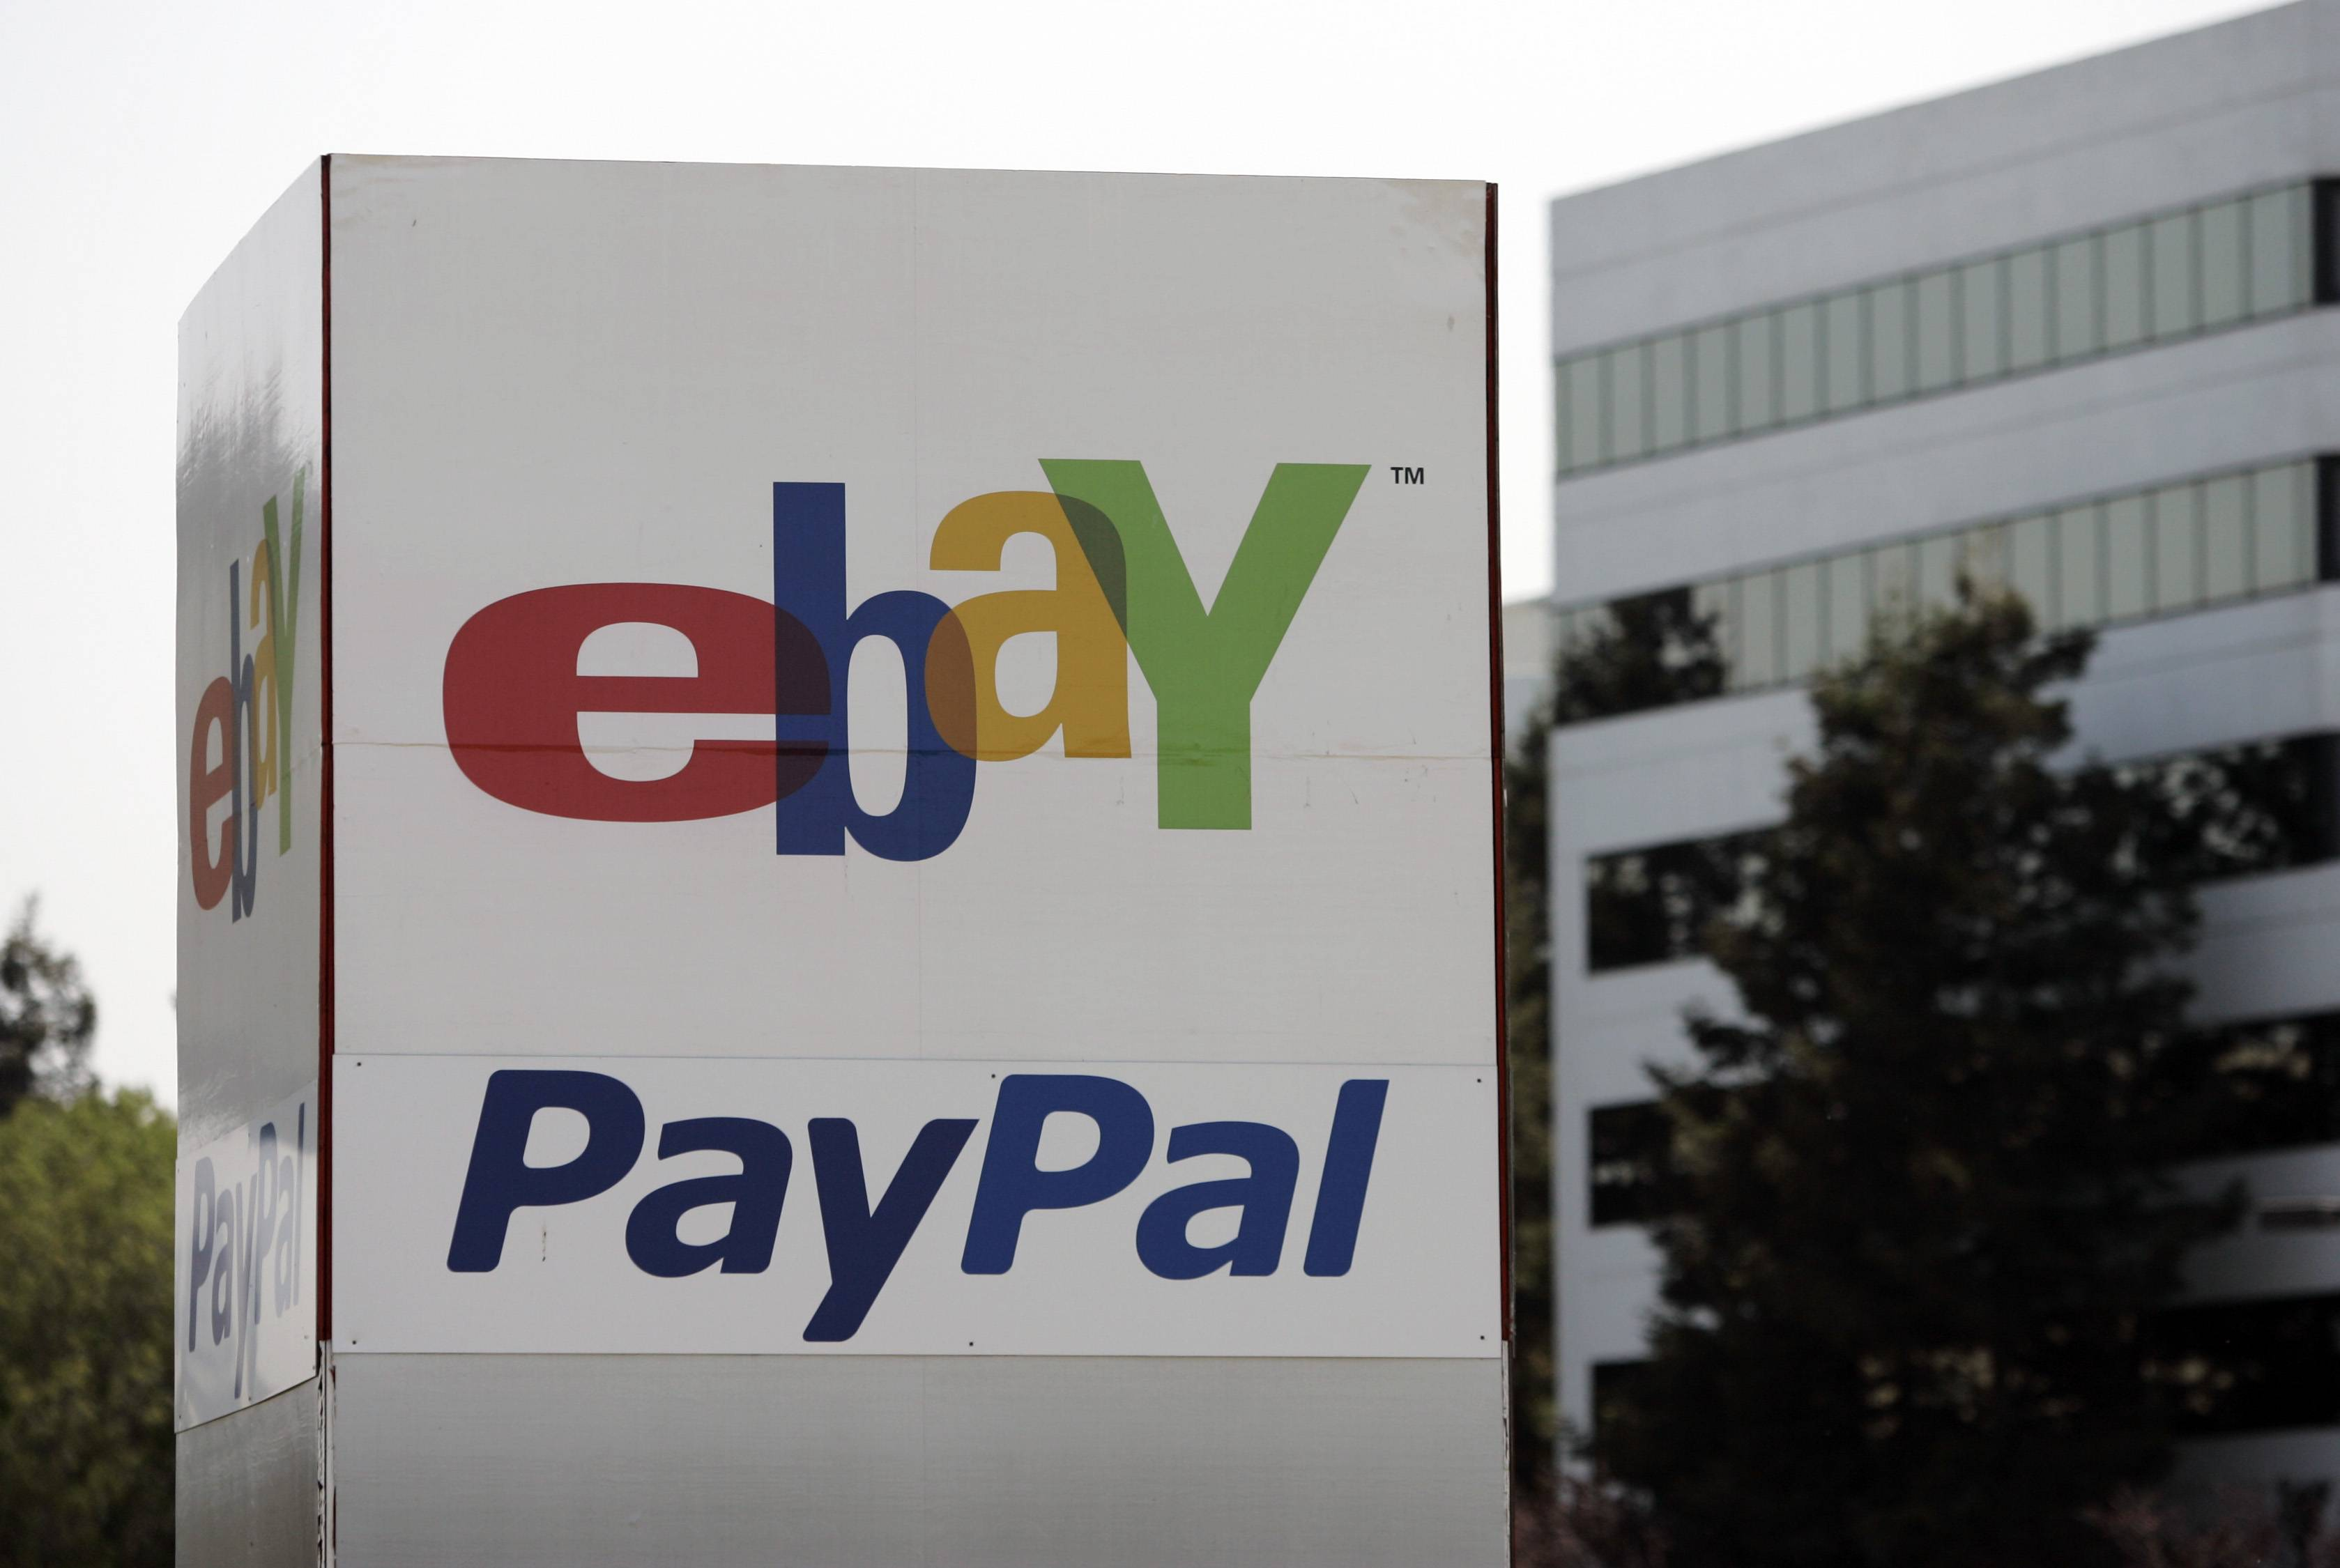 E-commerce site eBay is asking users to change their password after a cyberattack compromised a database containing encrypted passwords. The company says there is no evidence of any unauthorized activity and no evidence any financial or credit card information was stolen.